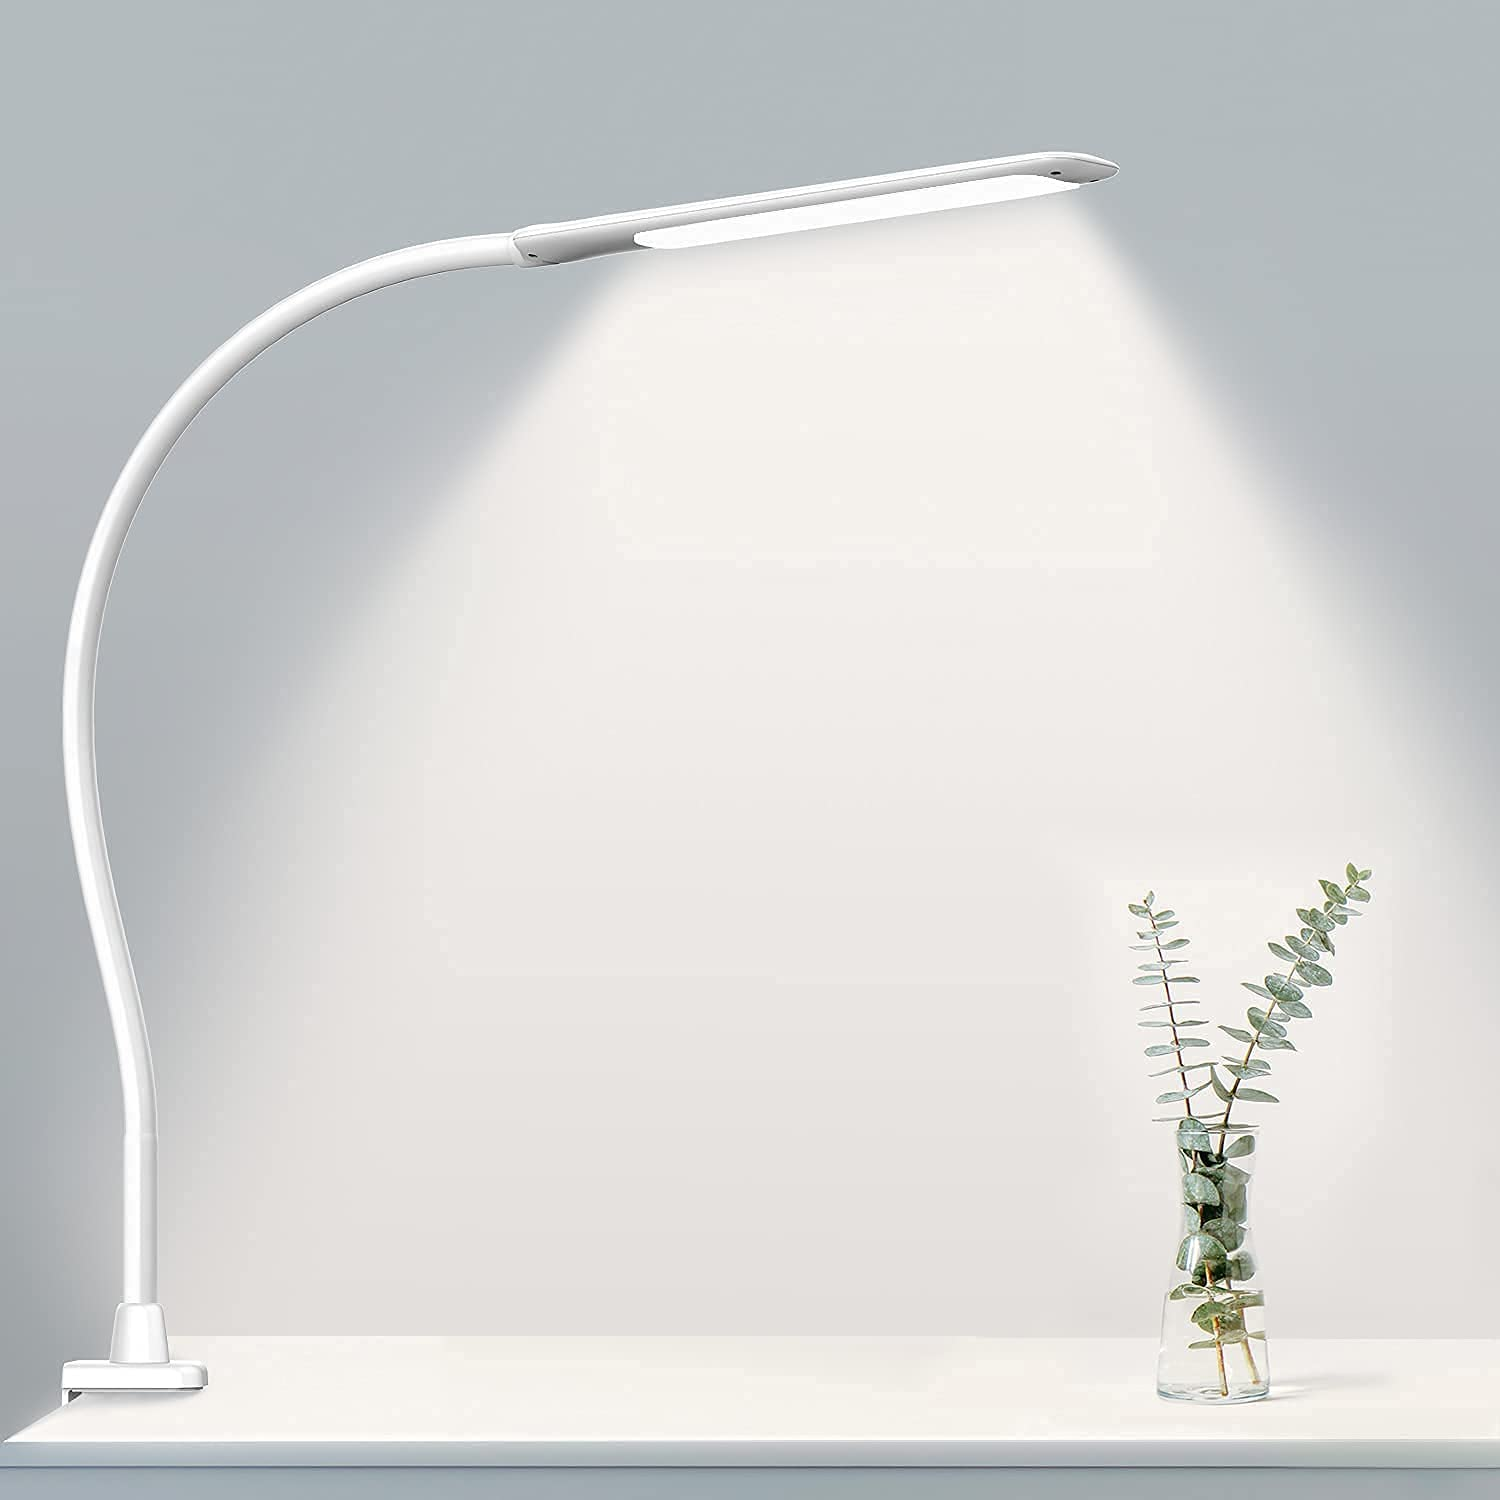 LED Desk Lamp with Clamp Archit 40% OFF Cheap Sale Flexible Touch Control Gooseneck San Jose Mall